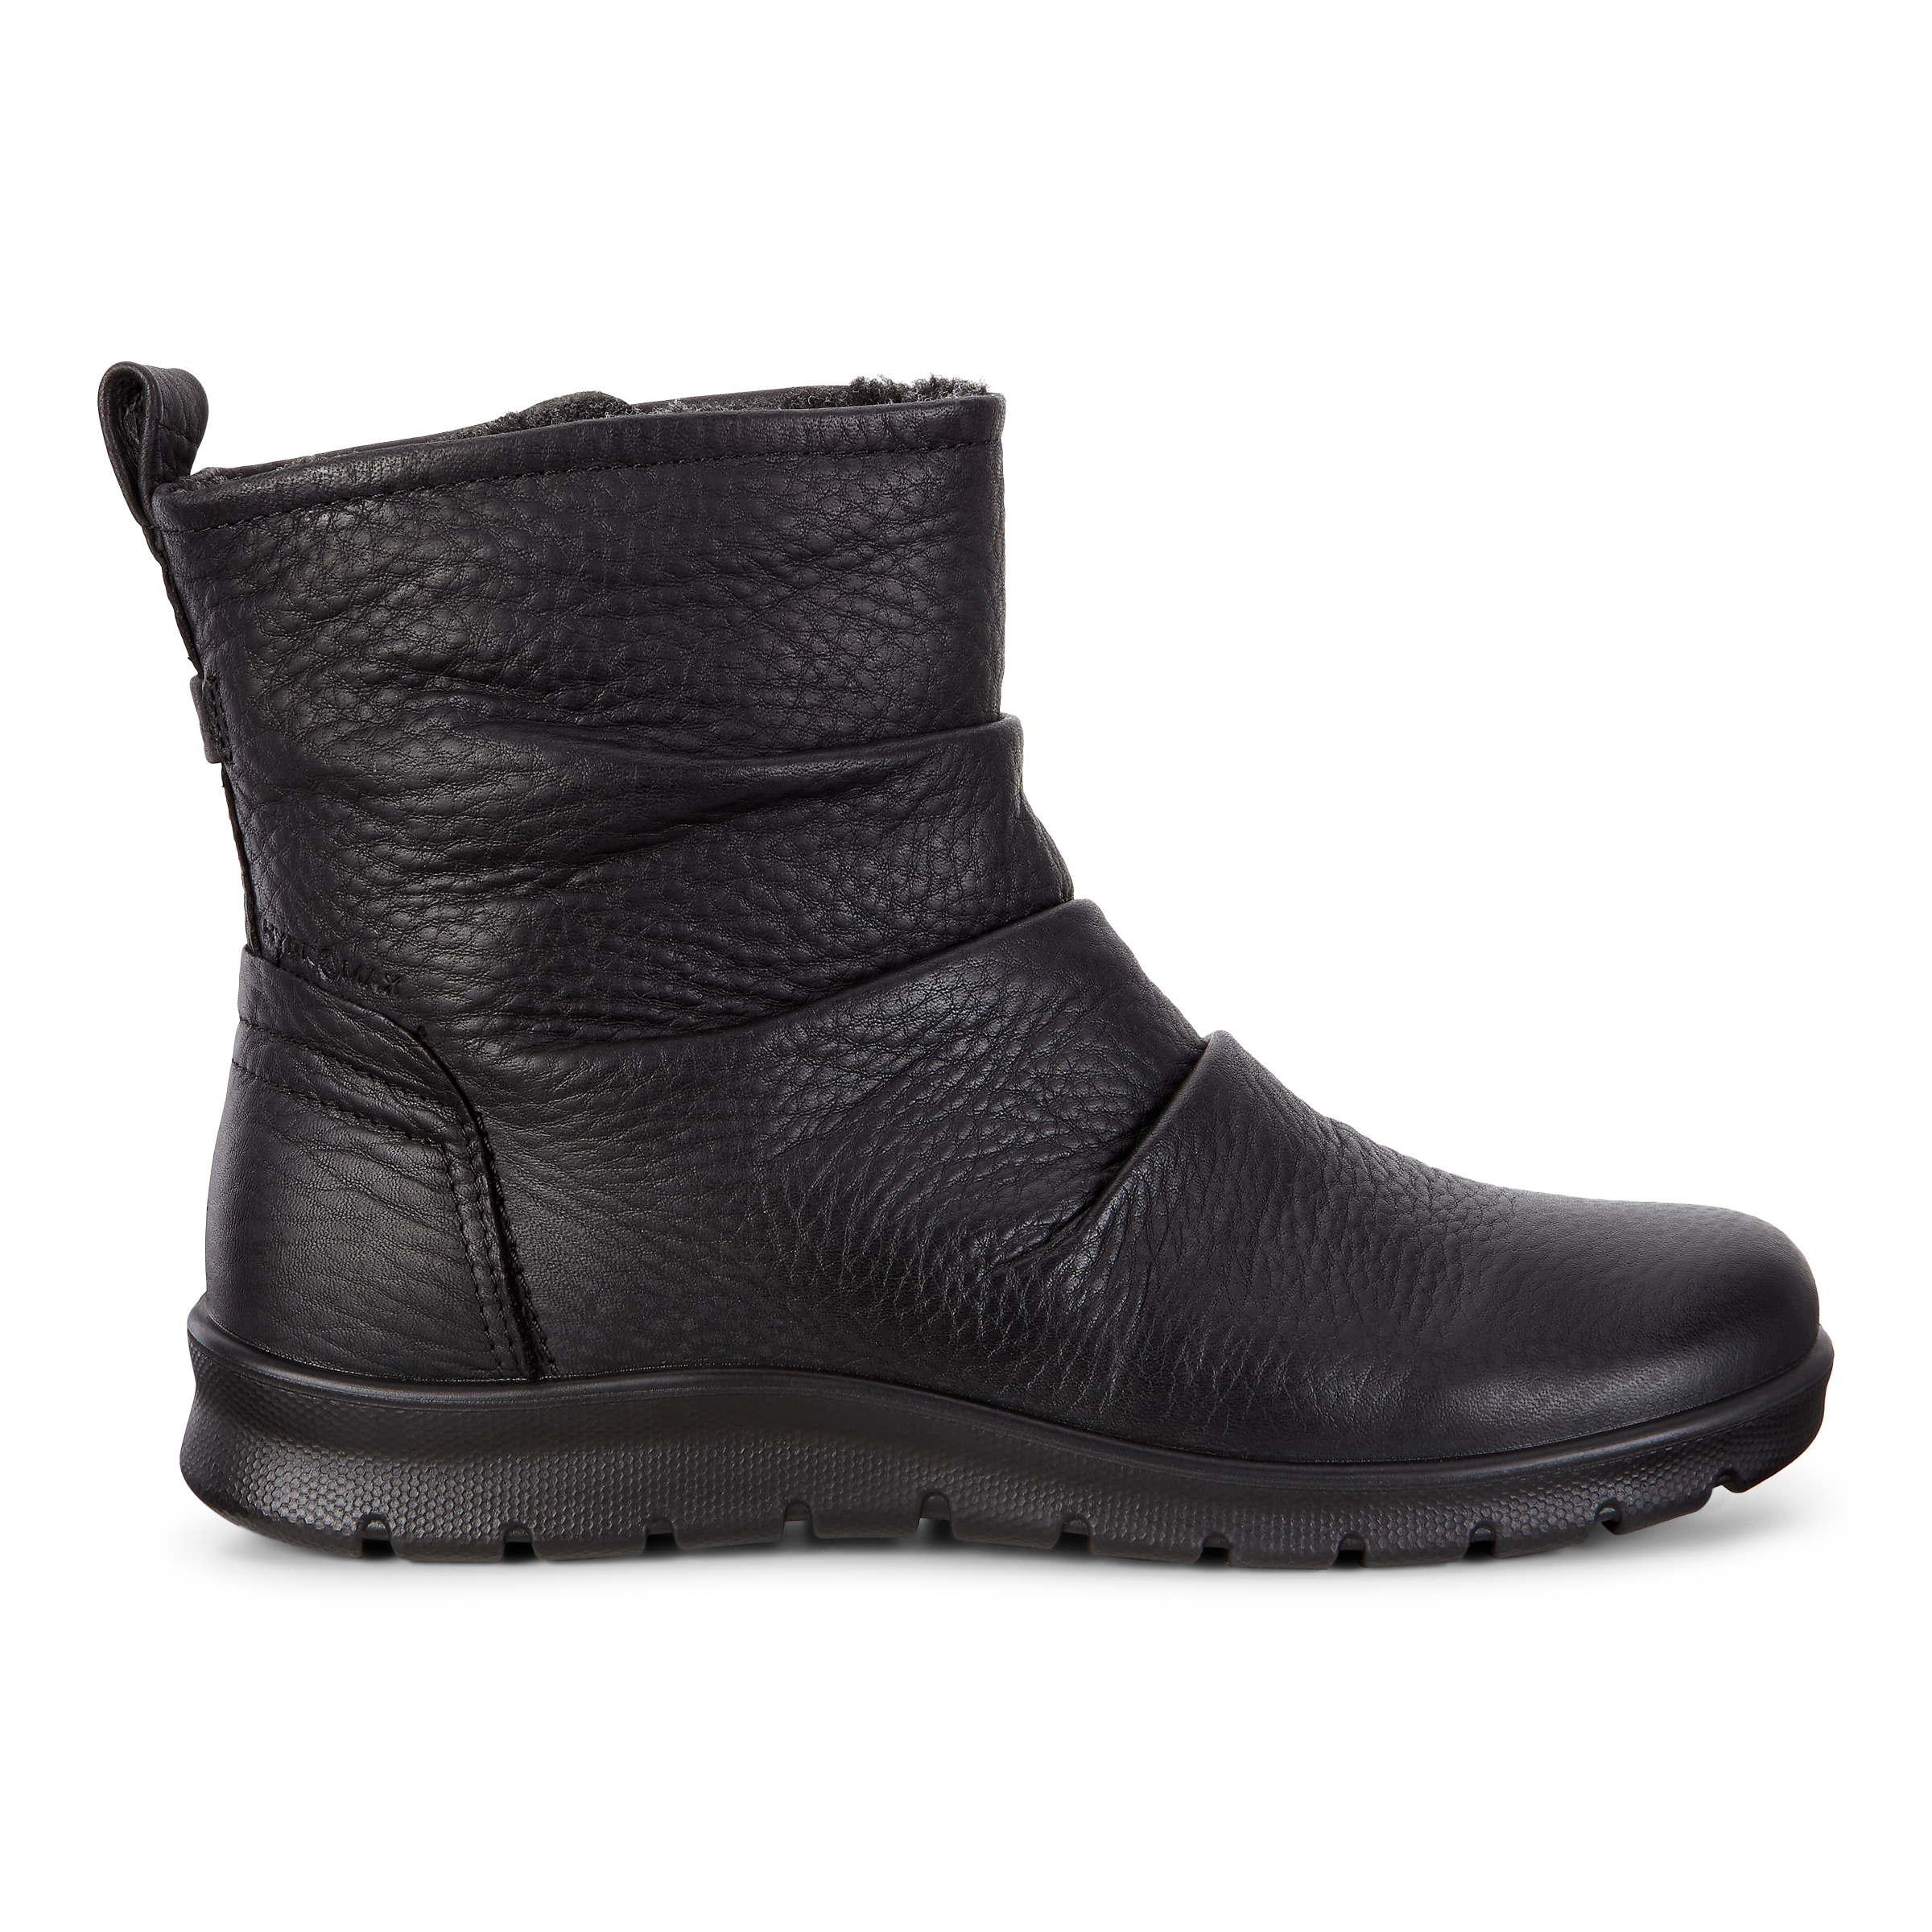 ECCO Babett Boot Ankle Boot Size 5-5.5 Black